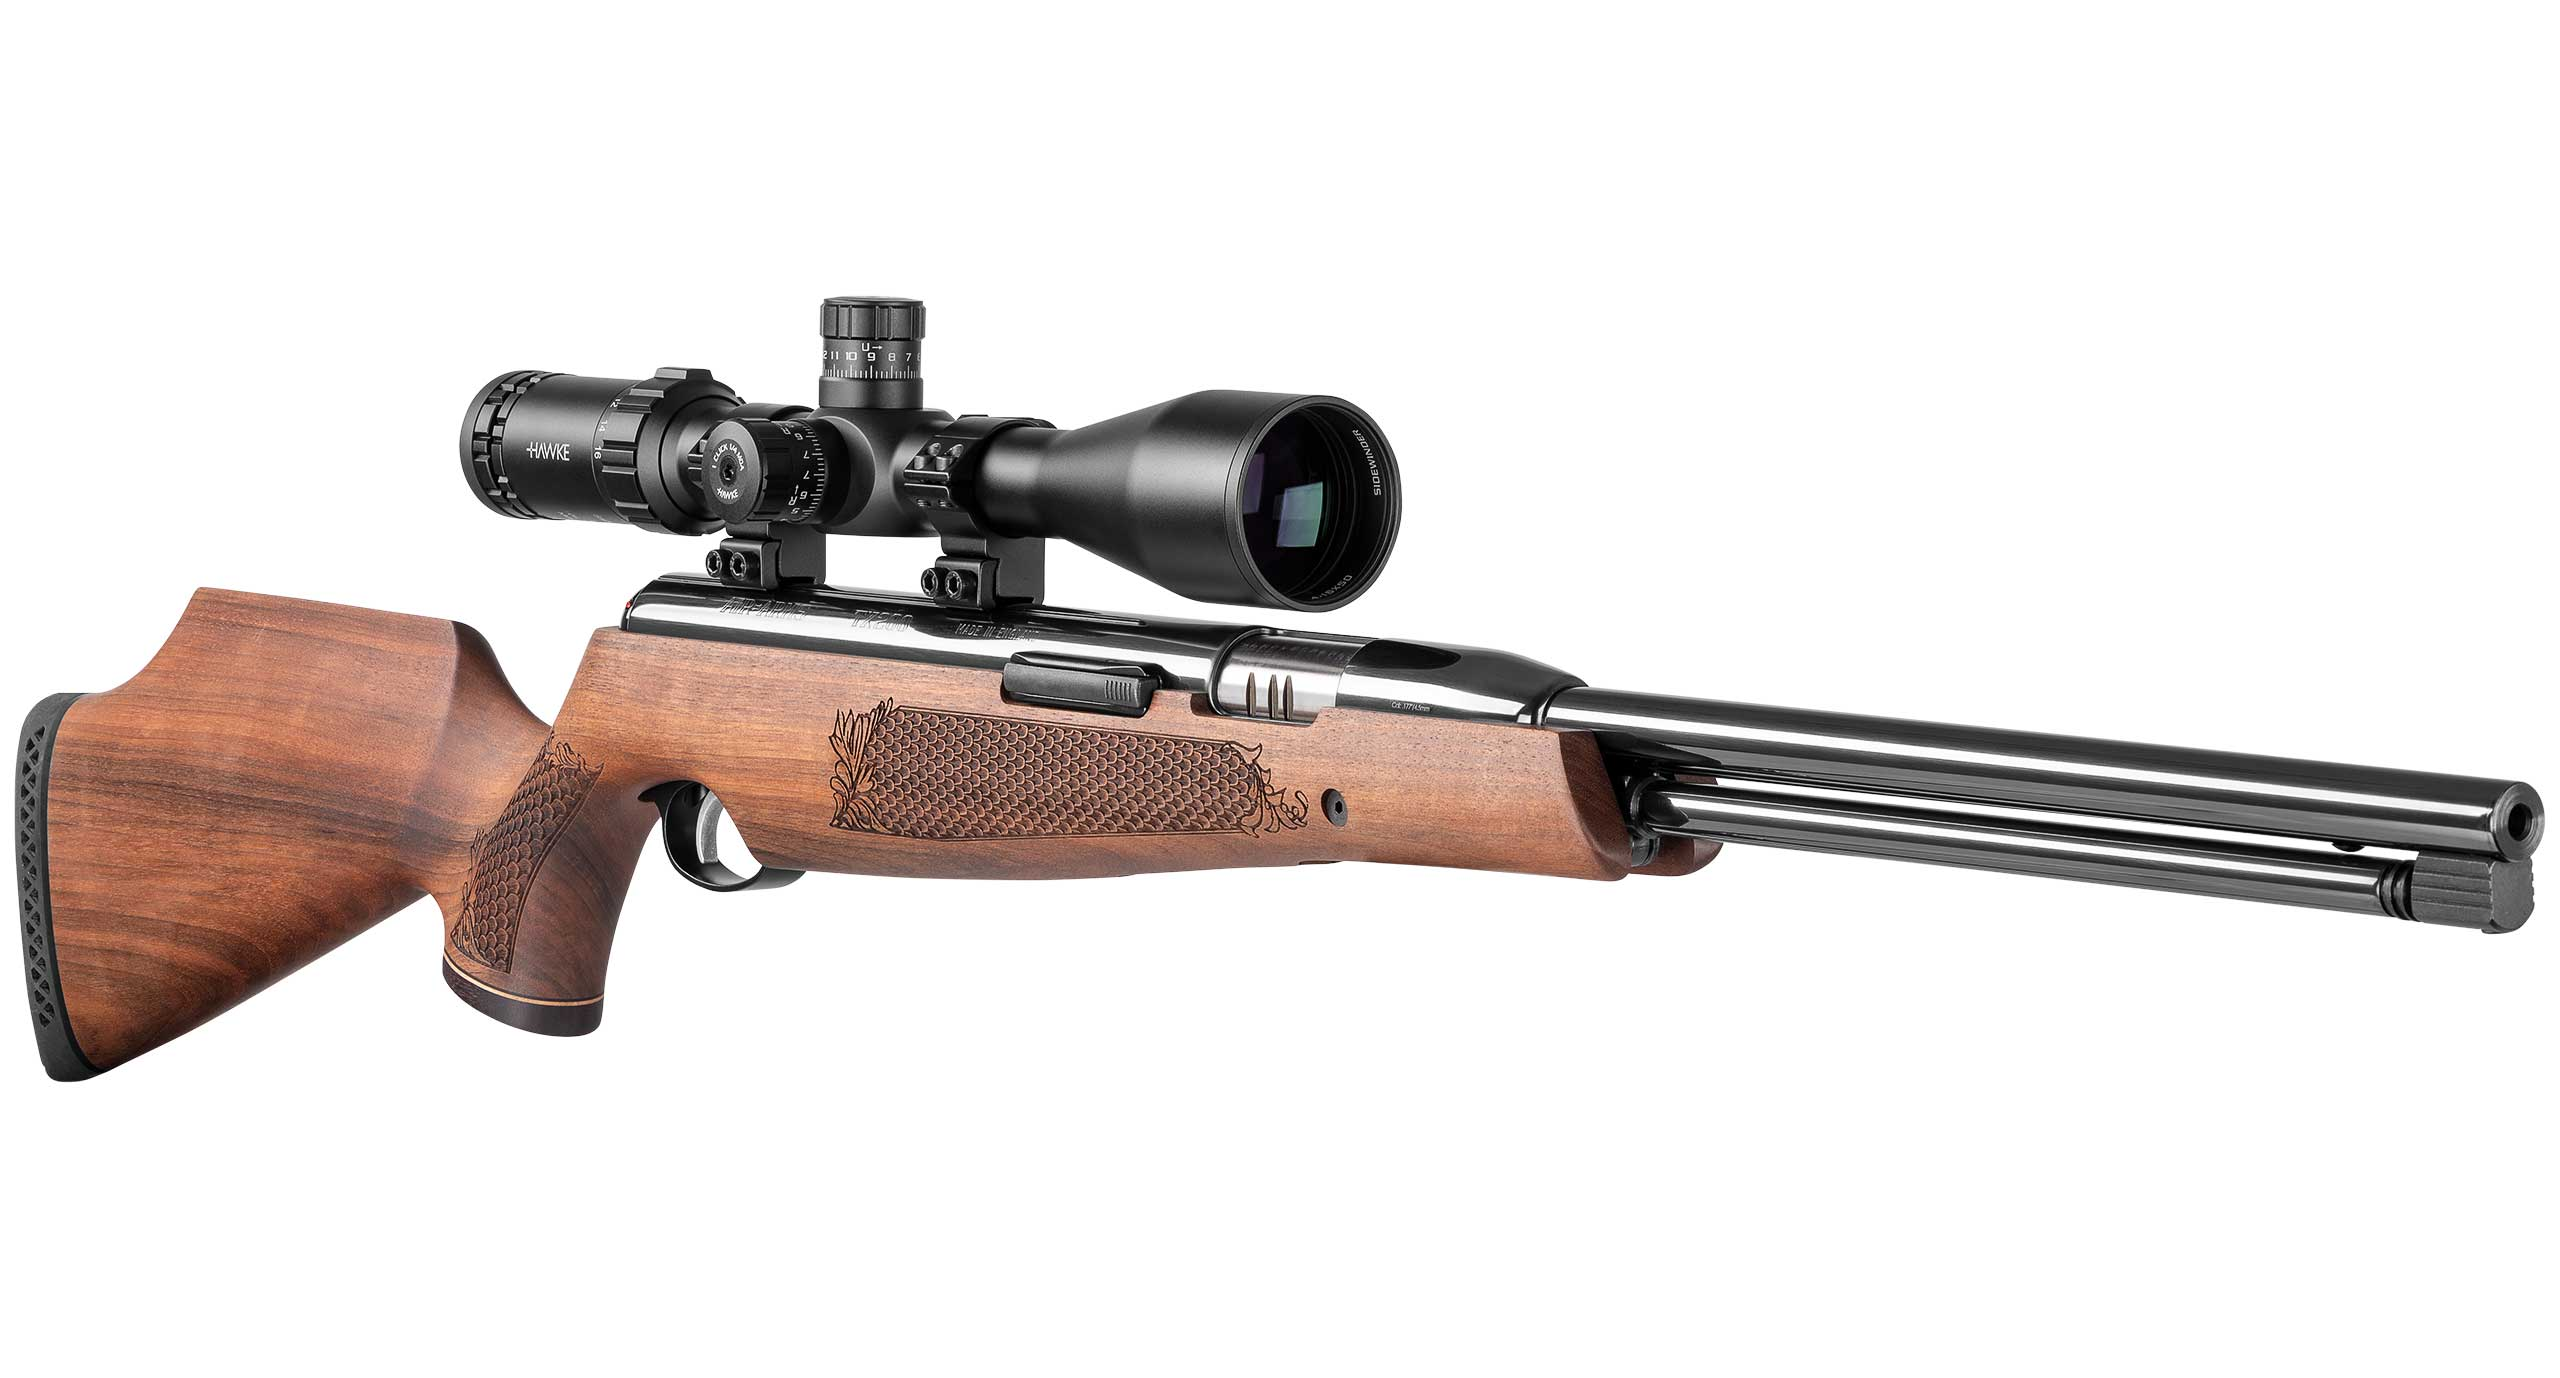 TX200 Spring Rifle Angled